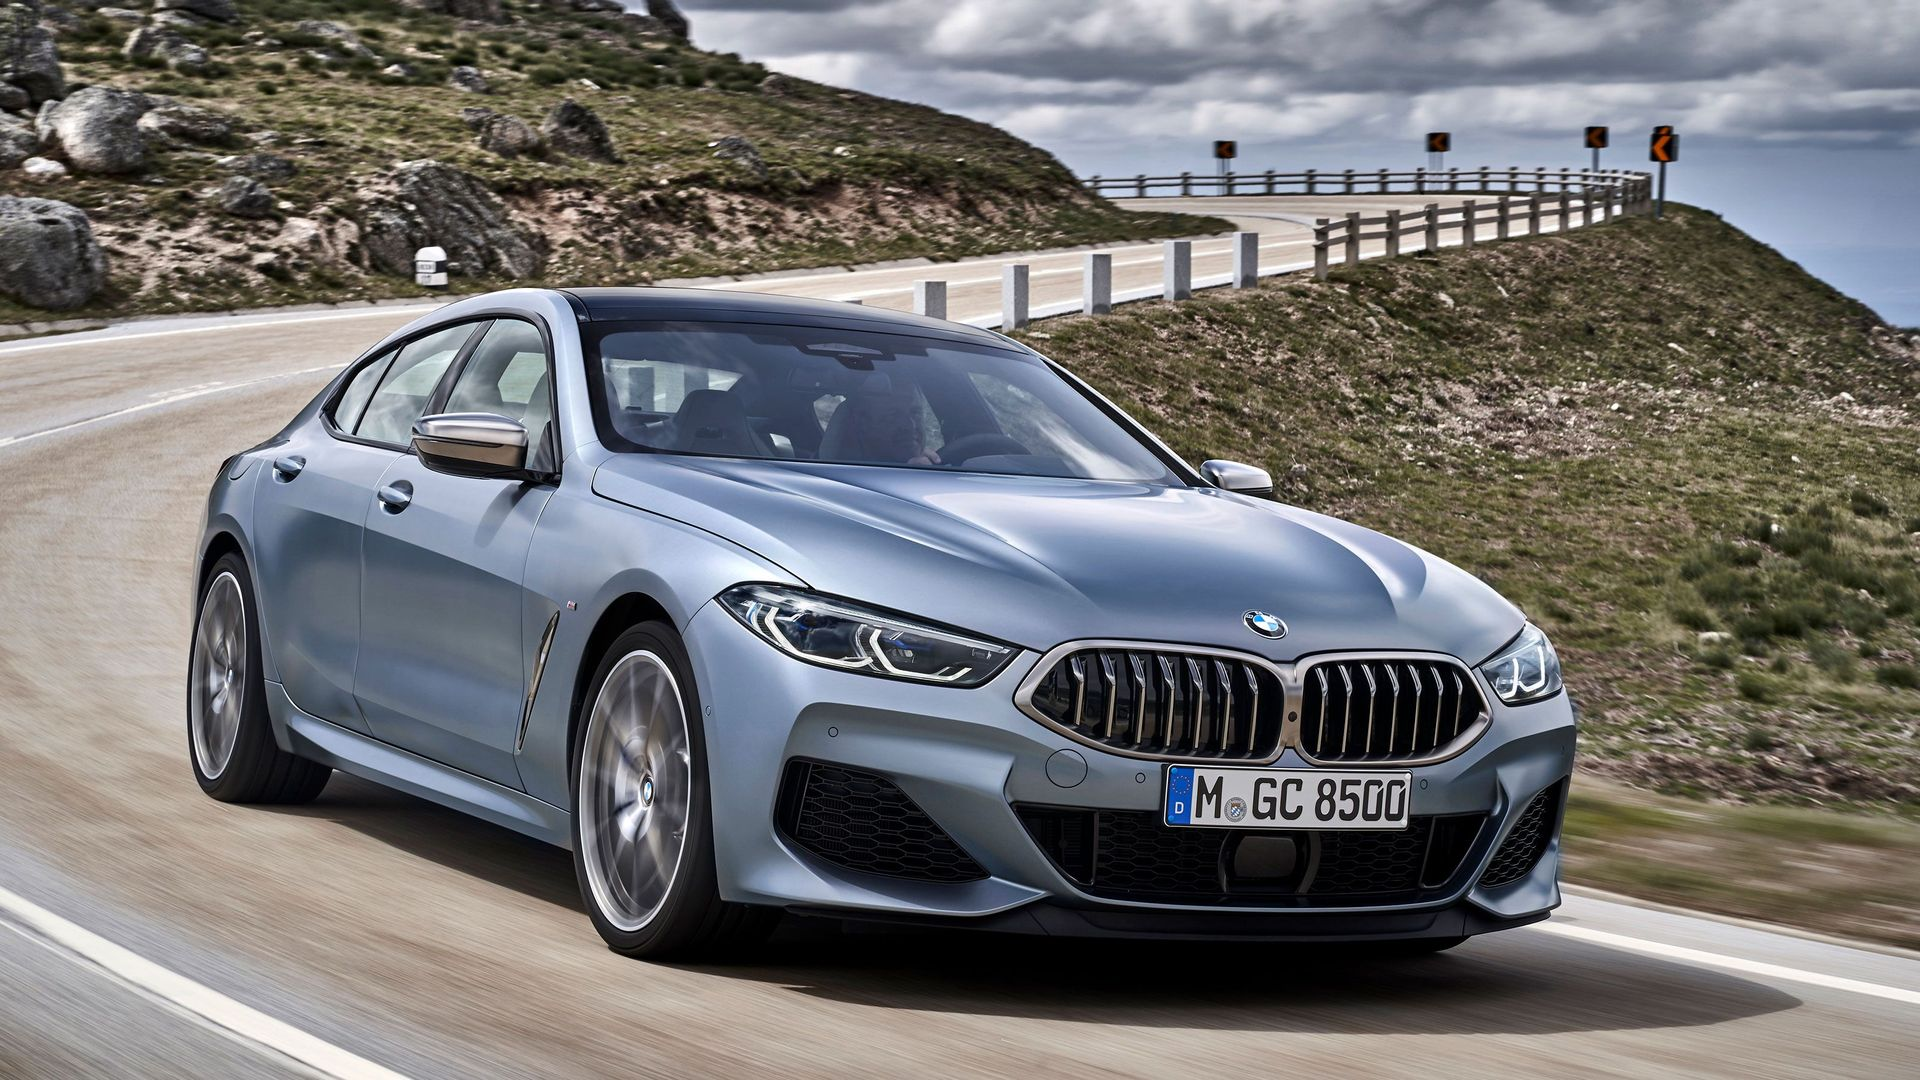 BMW 8 Series Gran Coupe M850i V8 image